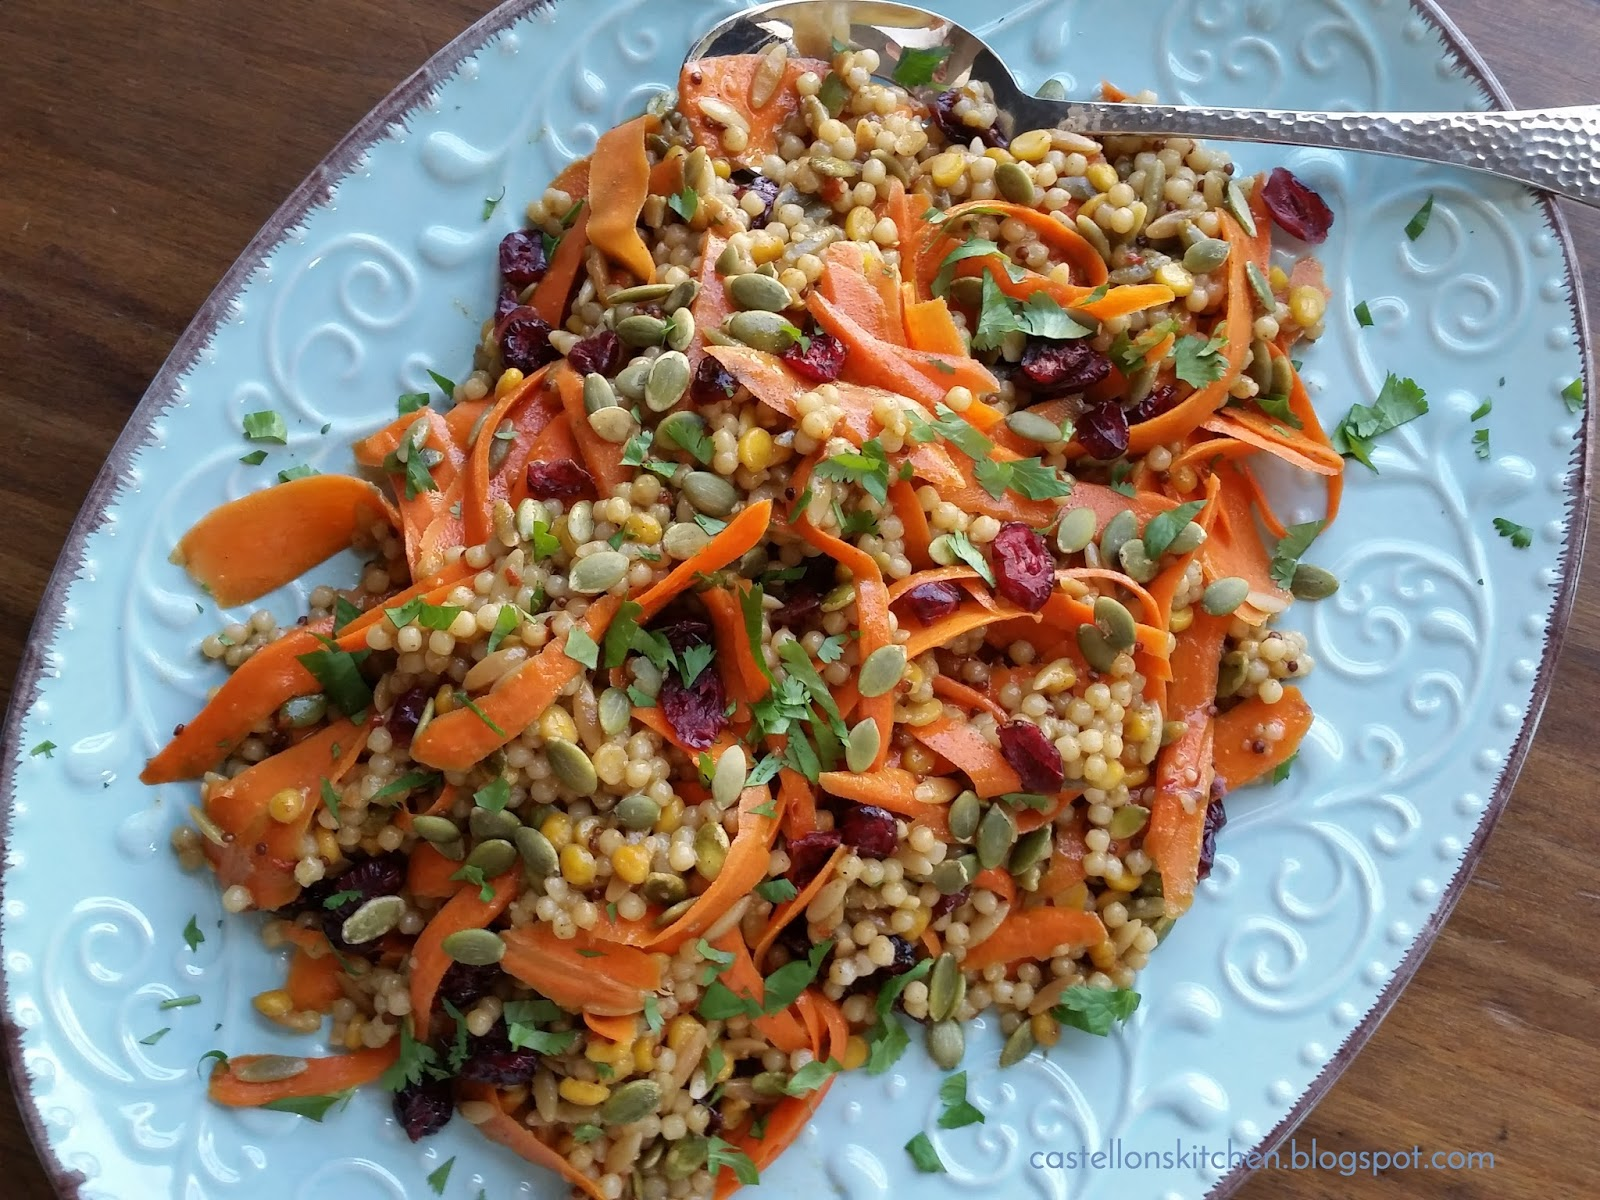 Castellon's Kitchen: Spiced Couscous and Carrot Salad